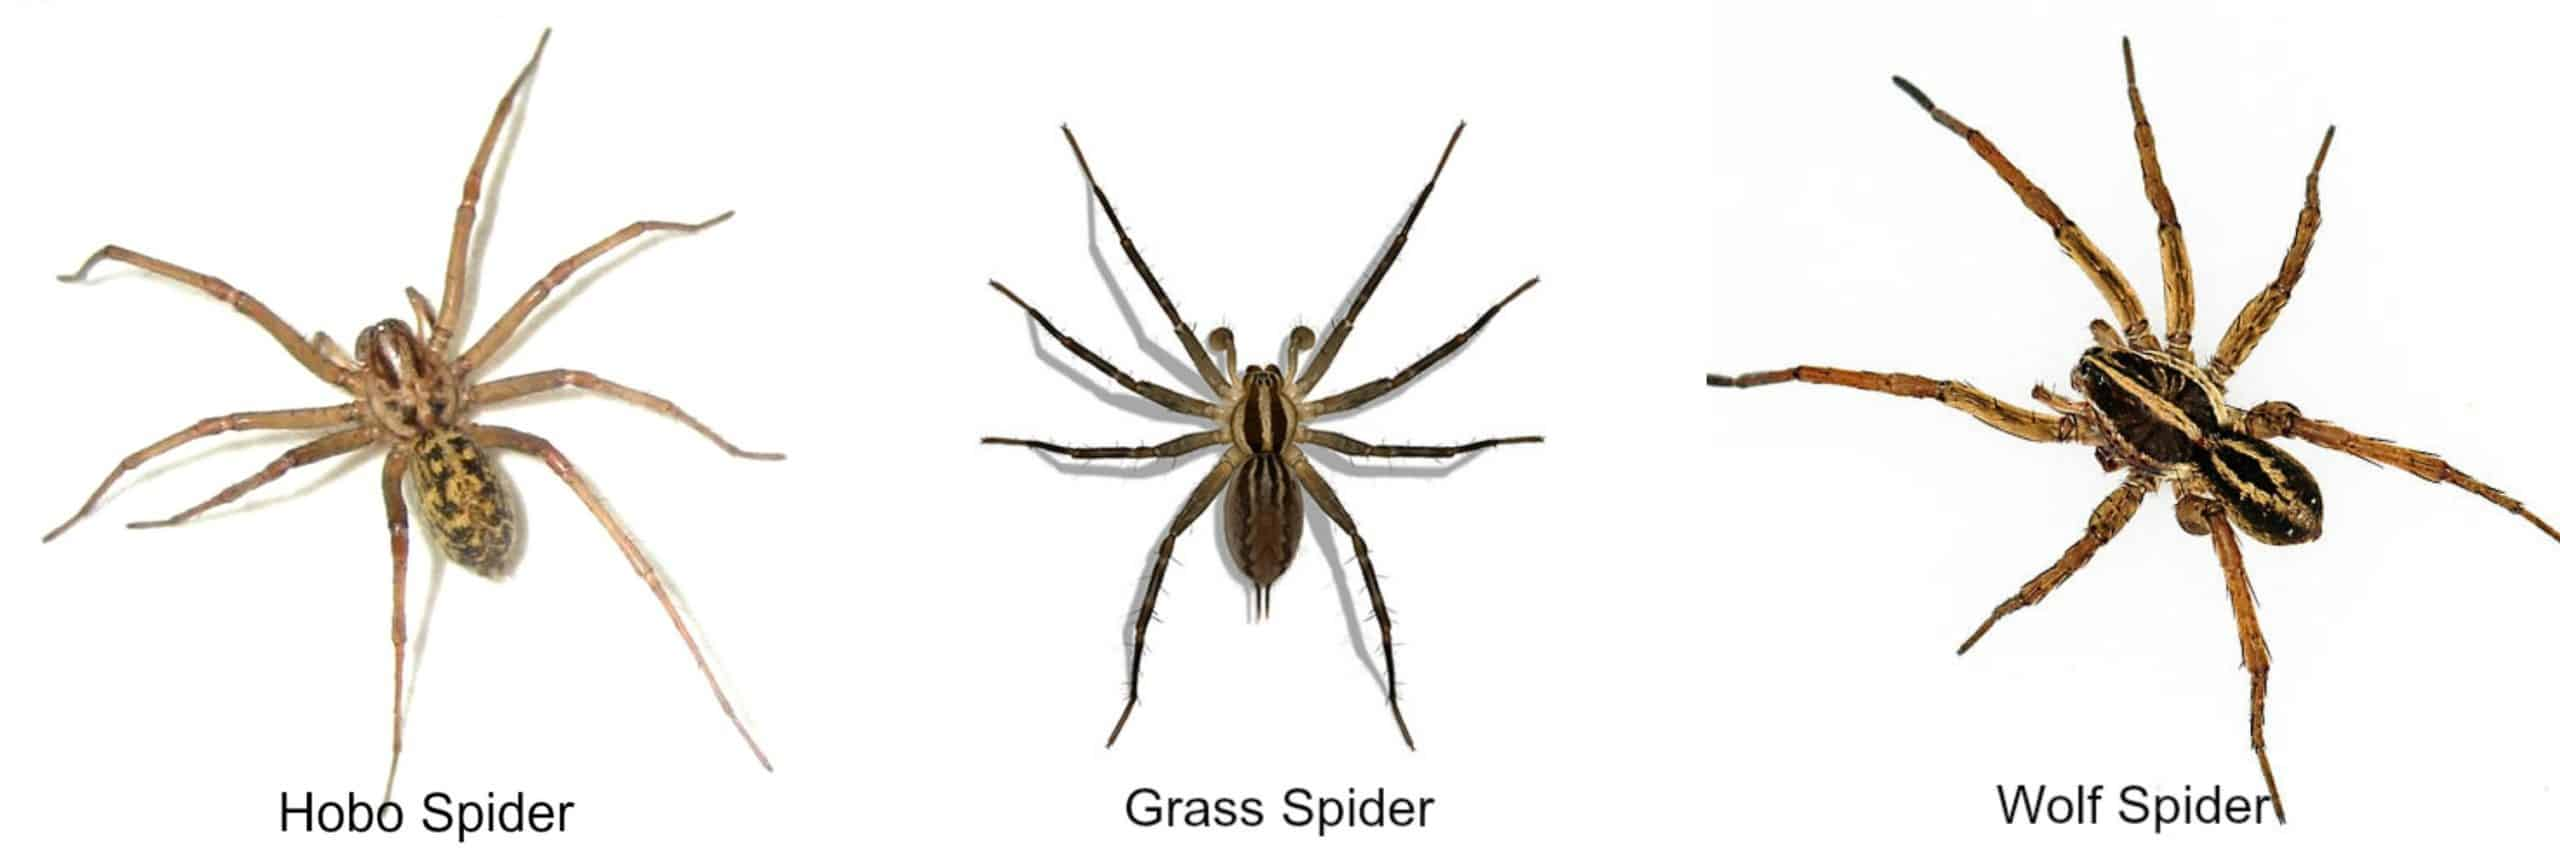 wolf spider vs grass vs hobo spiders